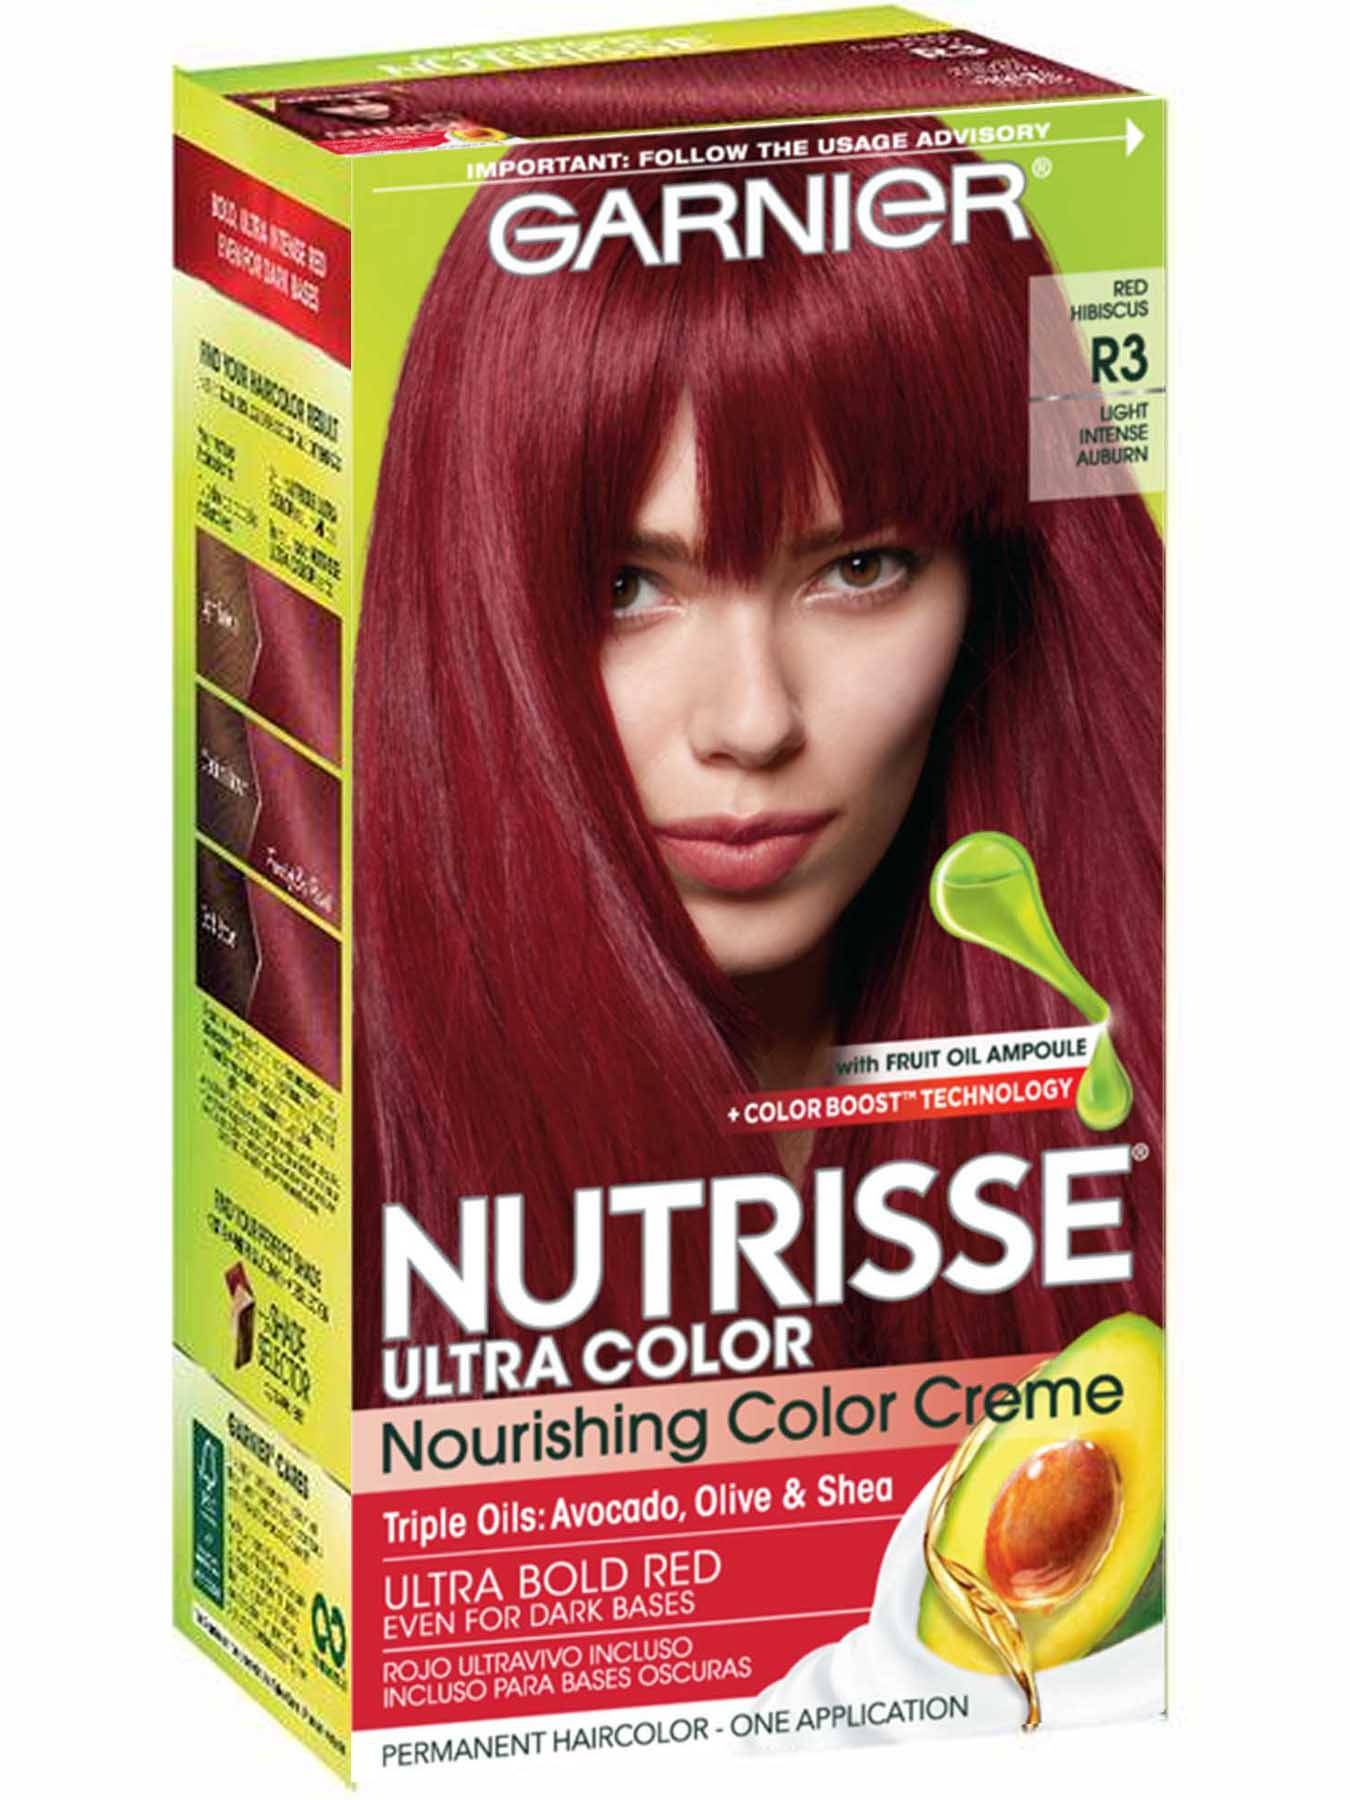 Nutrisse Ultra Color Light Intense Auburn Hair Color Garnier